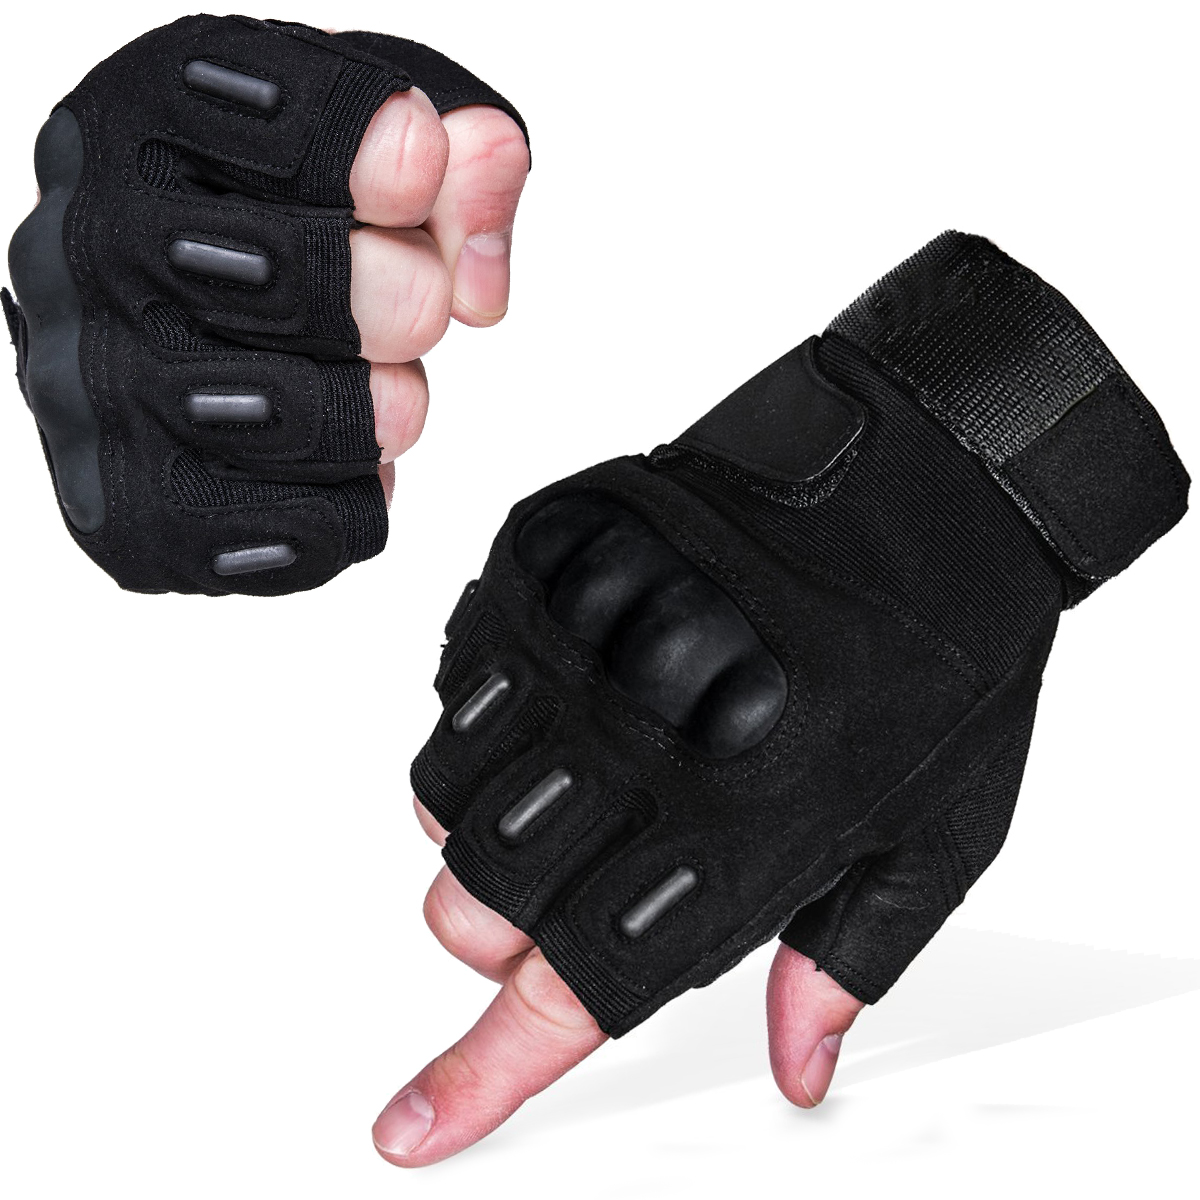 Fingerless impact gloves - Tactical Carbon Hard Knuckle Fingerless Gloves Army Paintball Airsoft Military Combat Anti Skid Half Finger